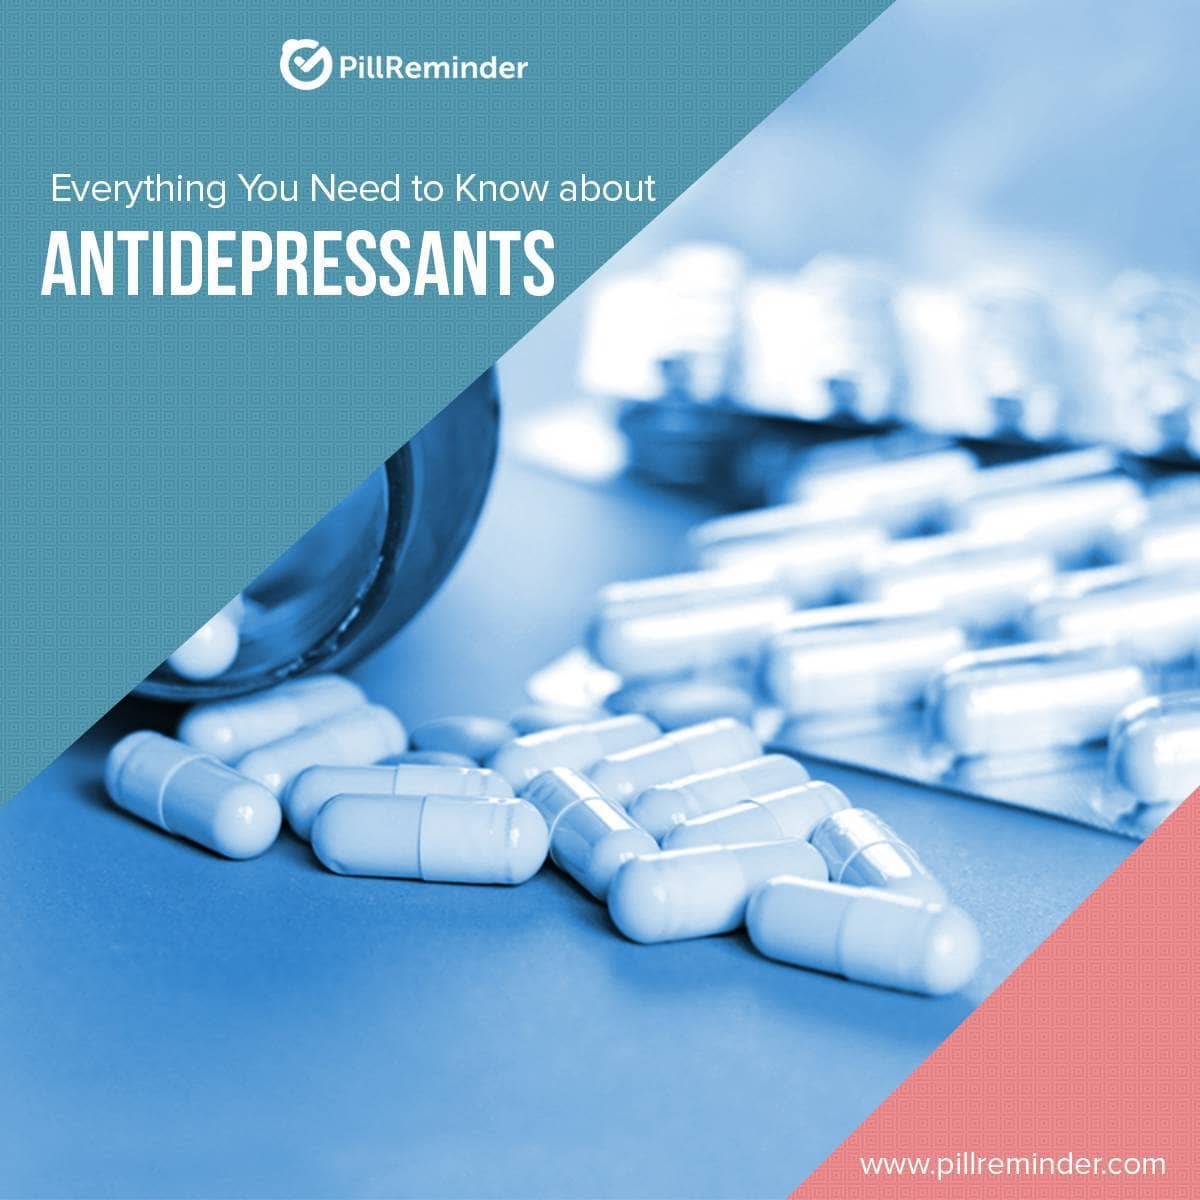 Everything You Need to Know About Antidepressants